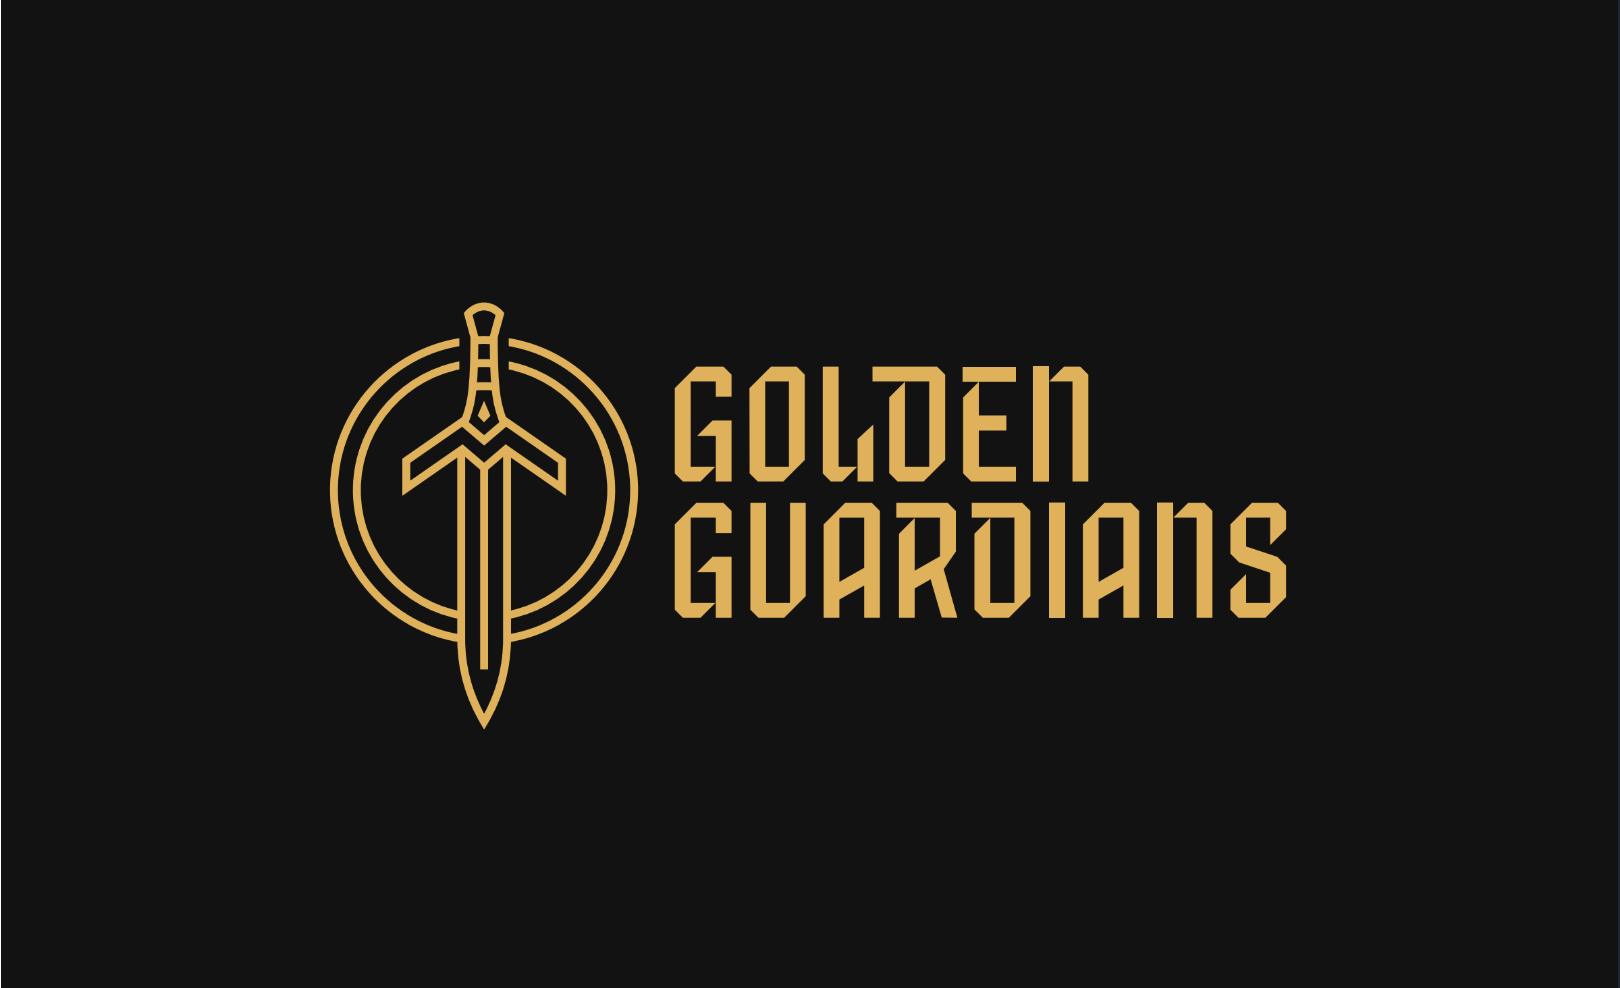 Golden Guardians to donate all merch proceeds to COVID-19 relief funds for month of April